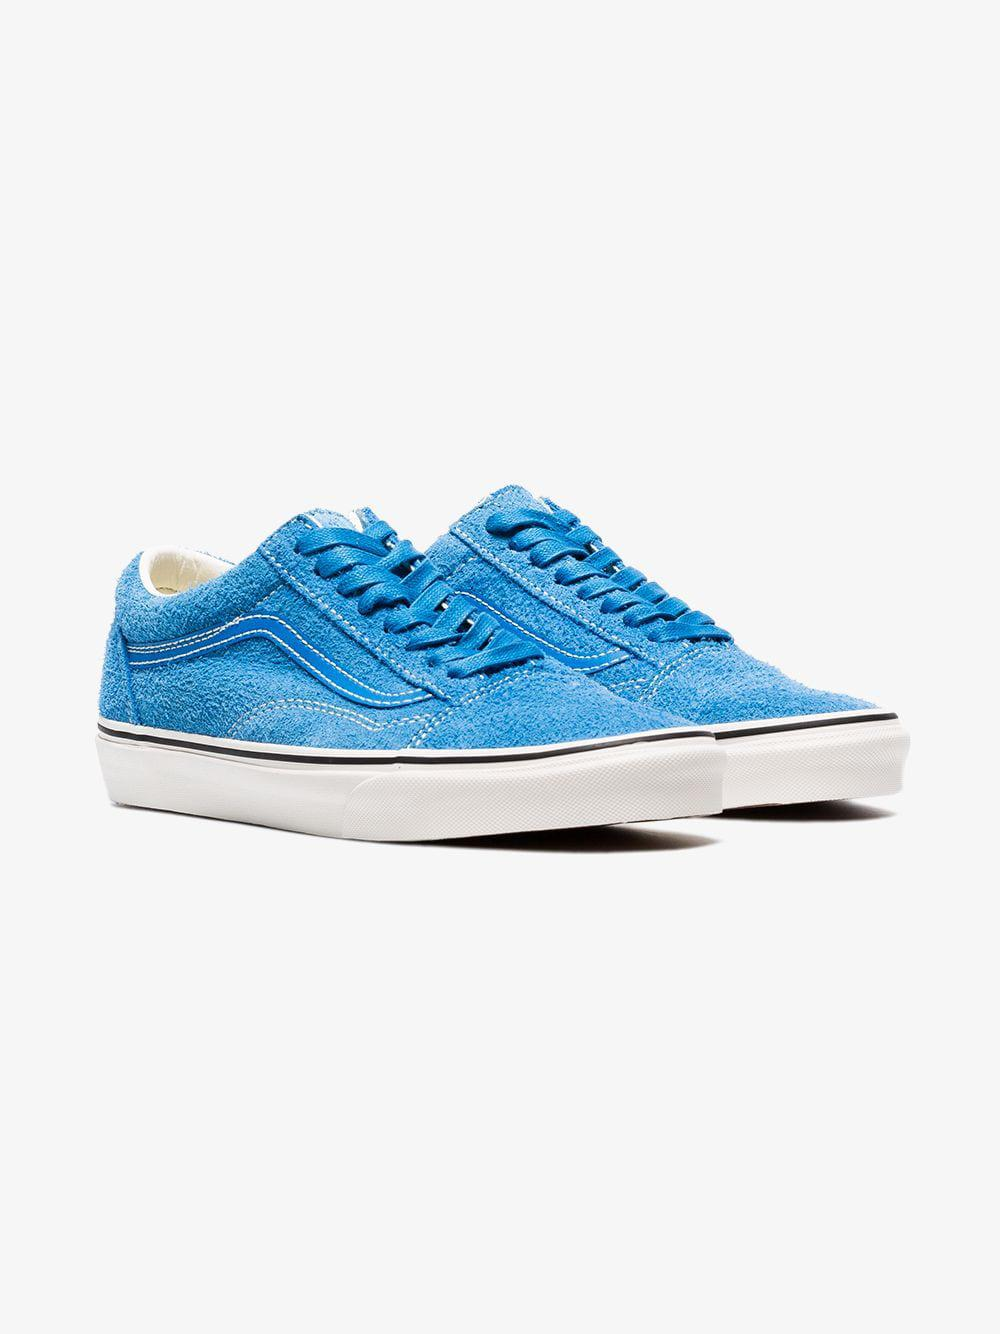 f0a204017e Vans Blue Hairy Old Skool Suede Sneakers in Blue for Men - Lyst